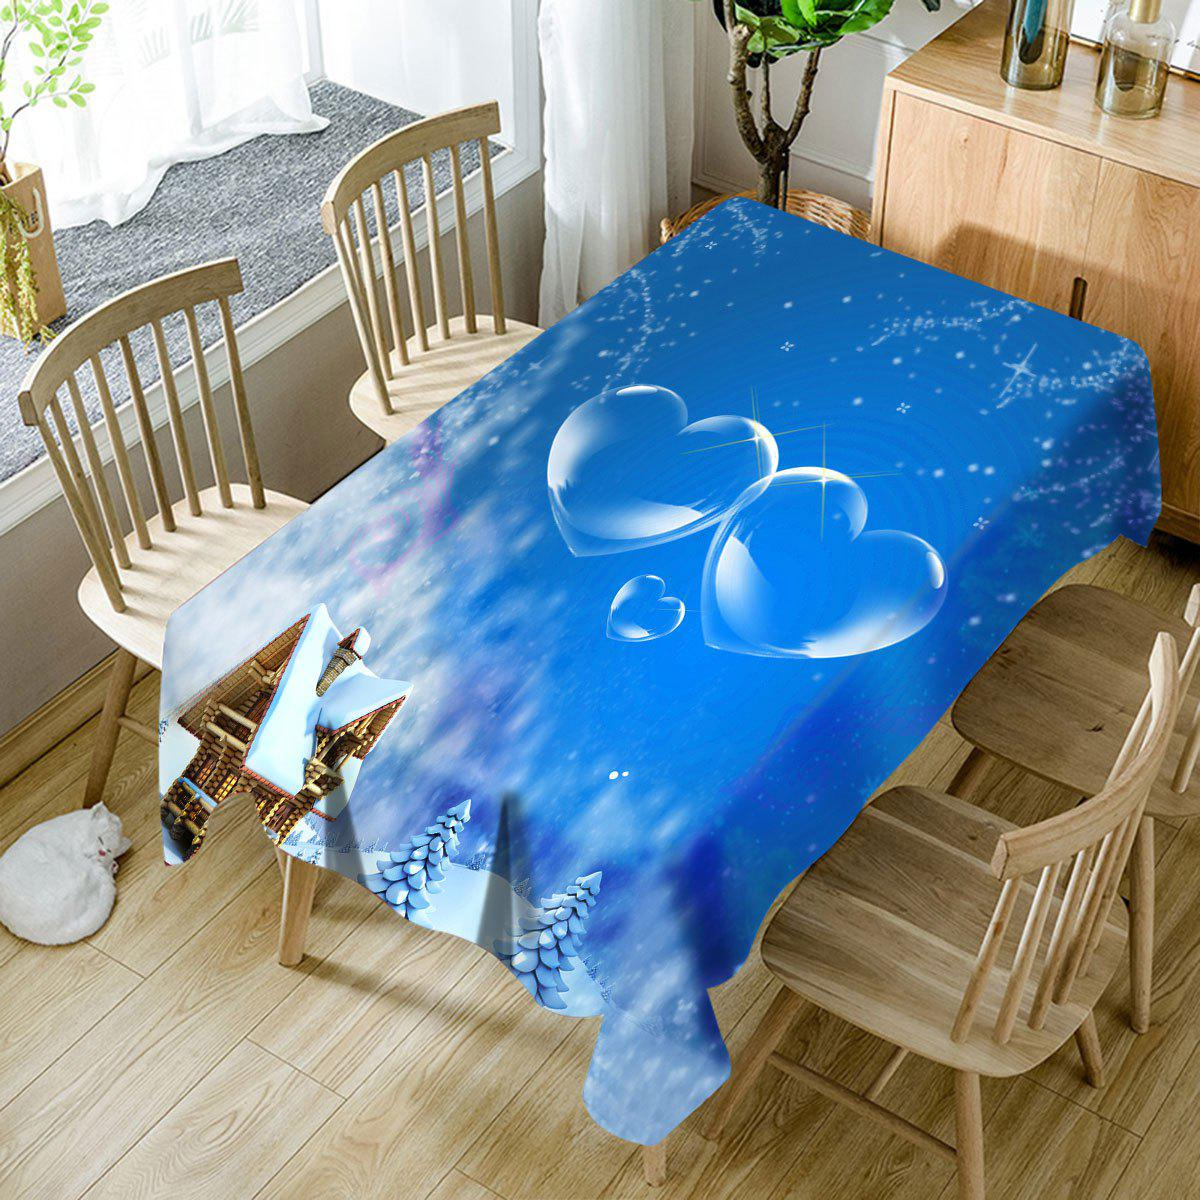 Online Snowscape Hearts Pattern Waterproof Fabric Table Cloth